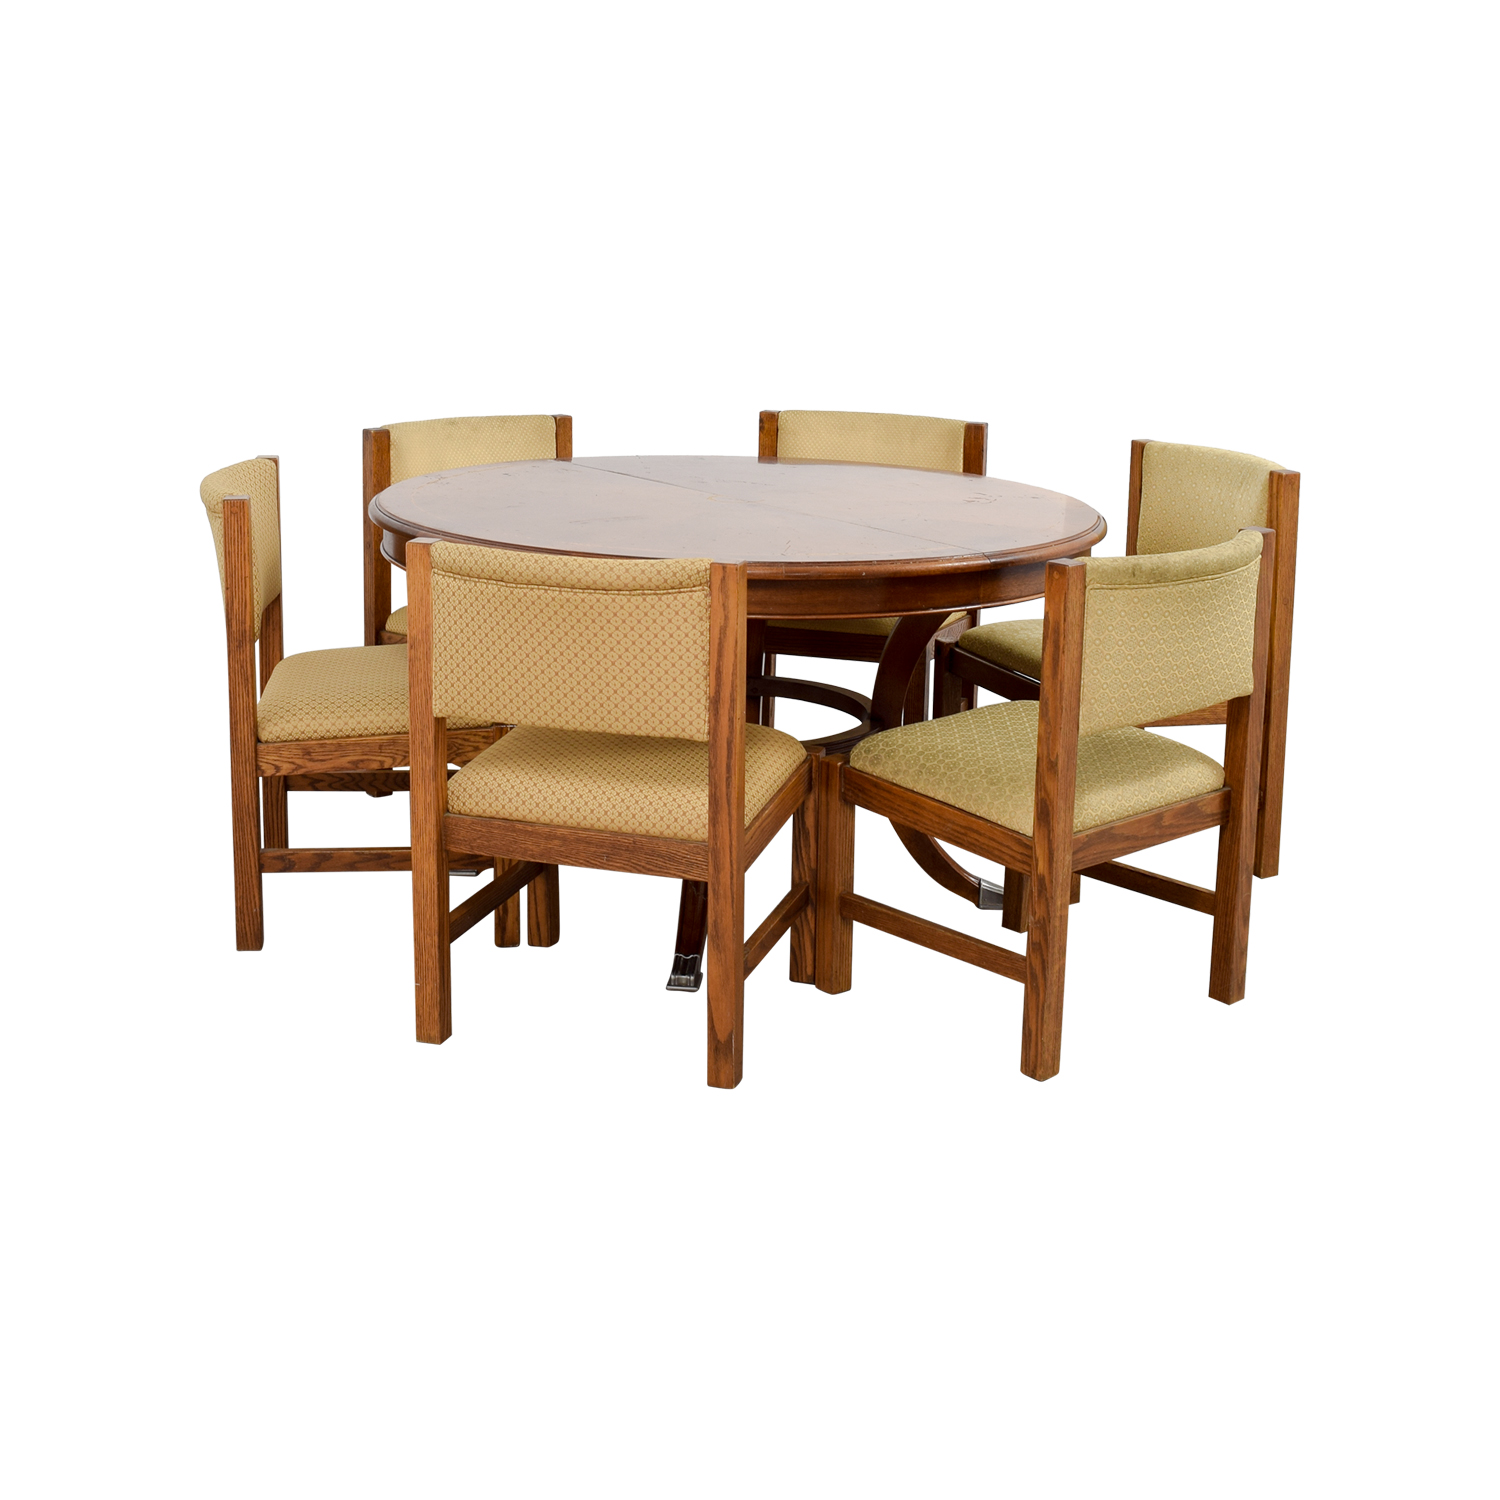 Pottery Barn Dining Room Set: Pottery Barn Pottery Barn Yellow Dining Set / Tables